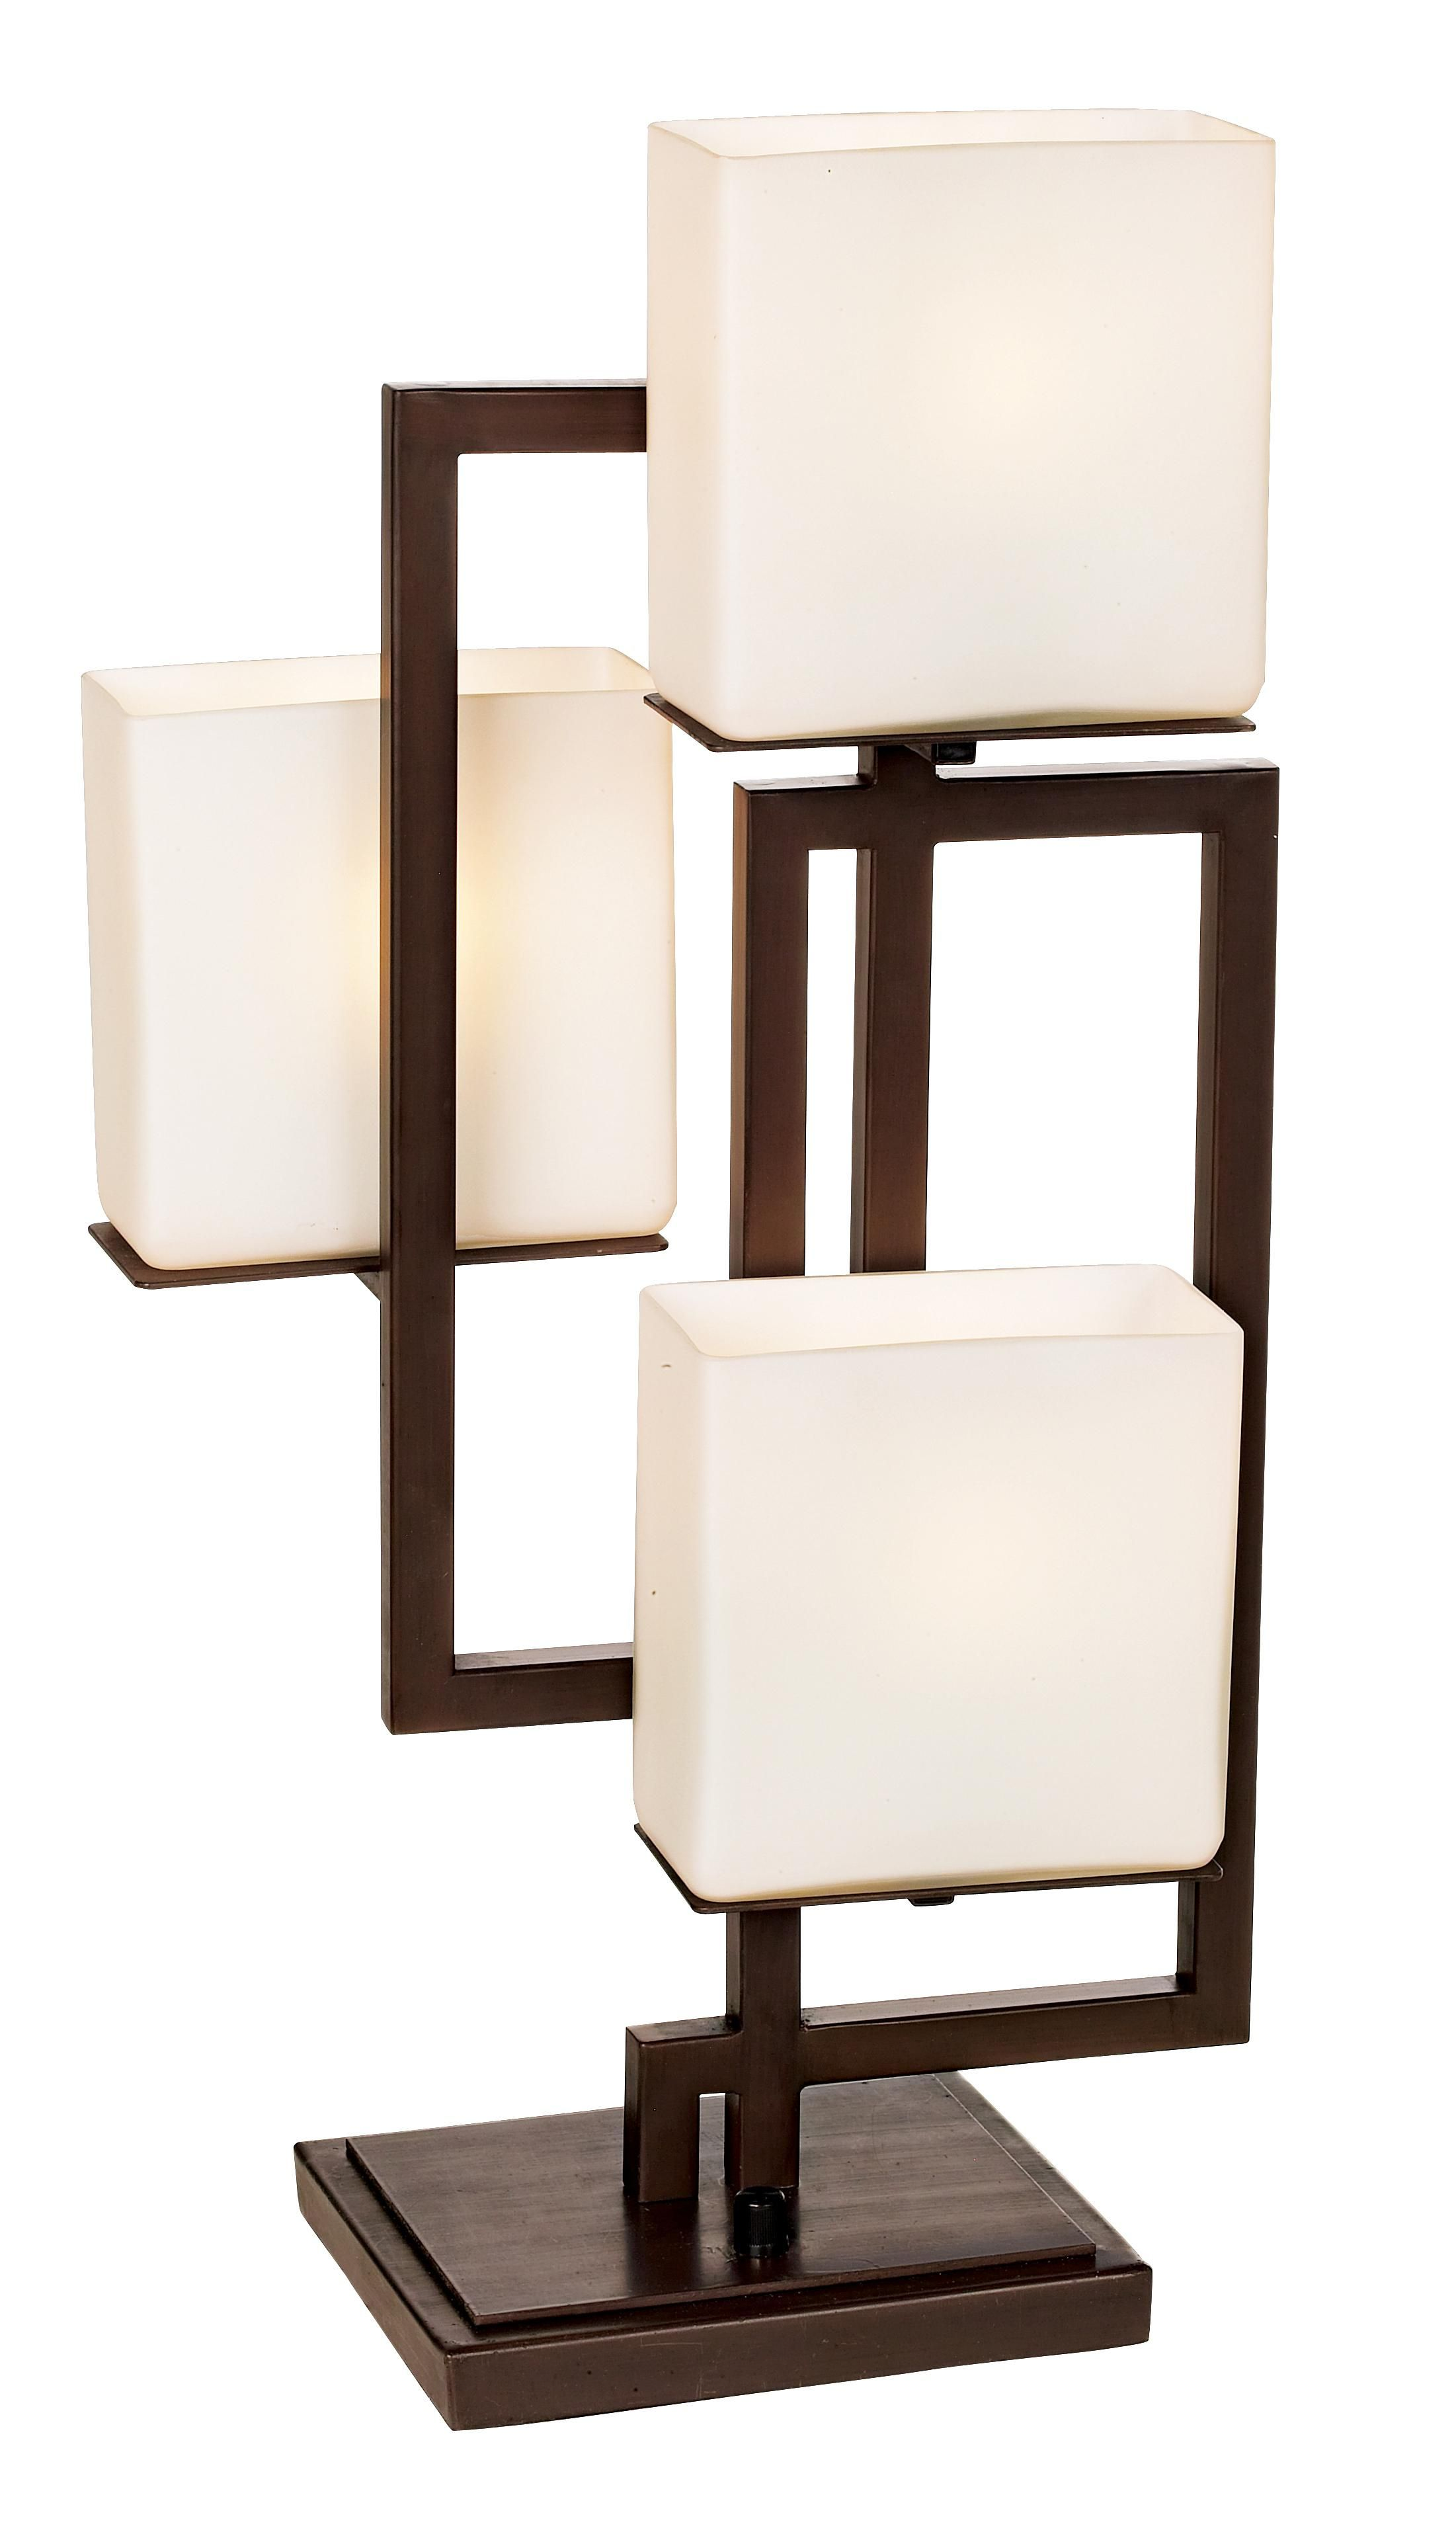 possini euro design the square accent table lamp style lamps plus tables lighting bronze metal piece nesting bunnings cane chairs pendant modern couch stained glass floor brown